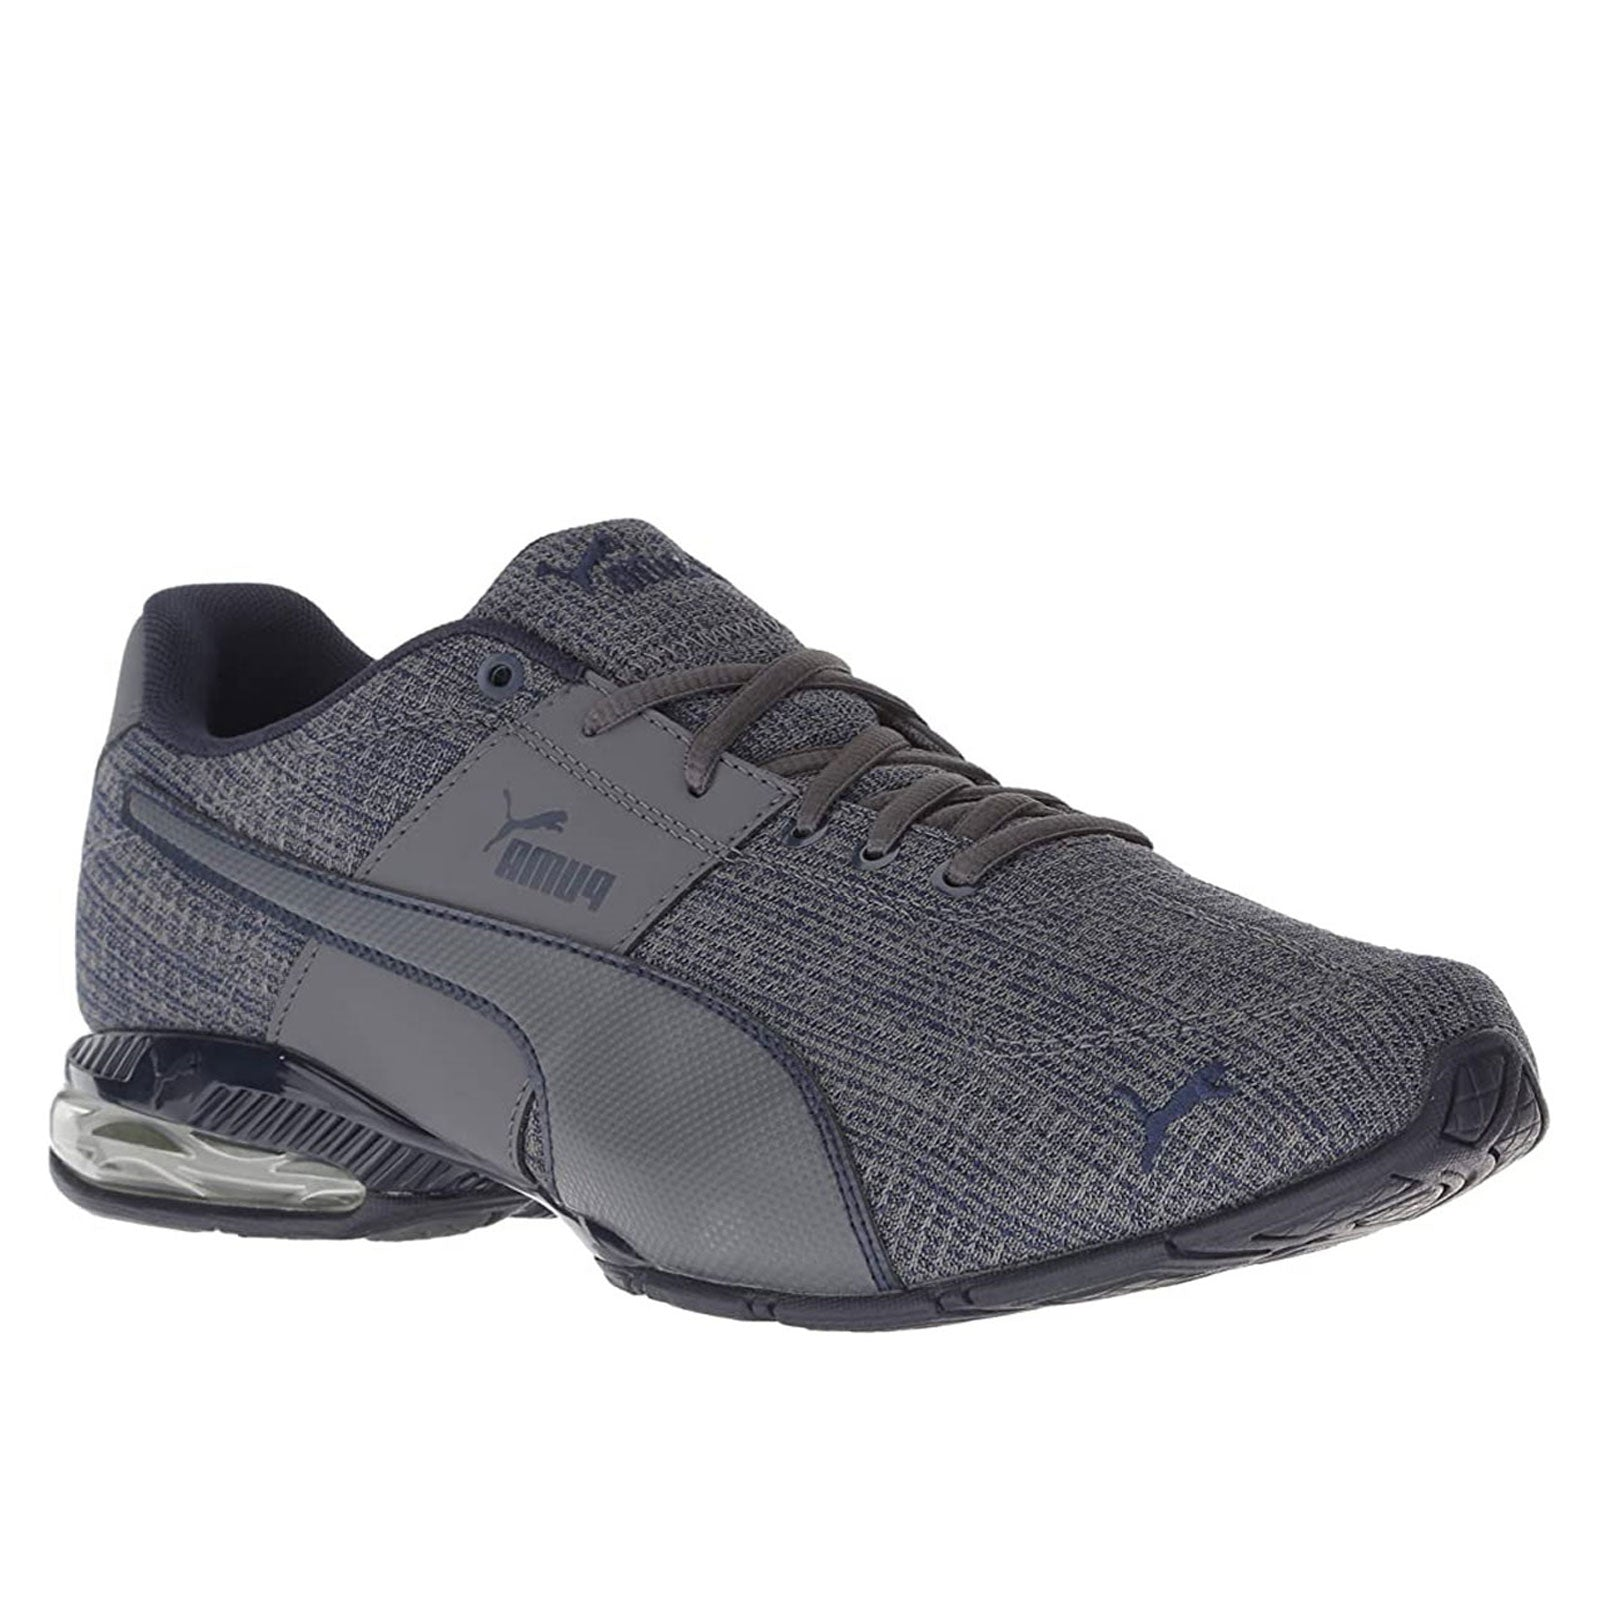 Puma Cell Surin 2 Heather 19111802  (Iron Gate / Peacoat)